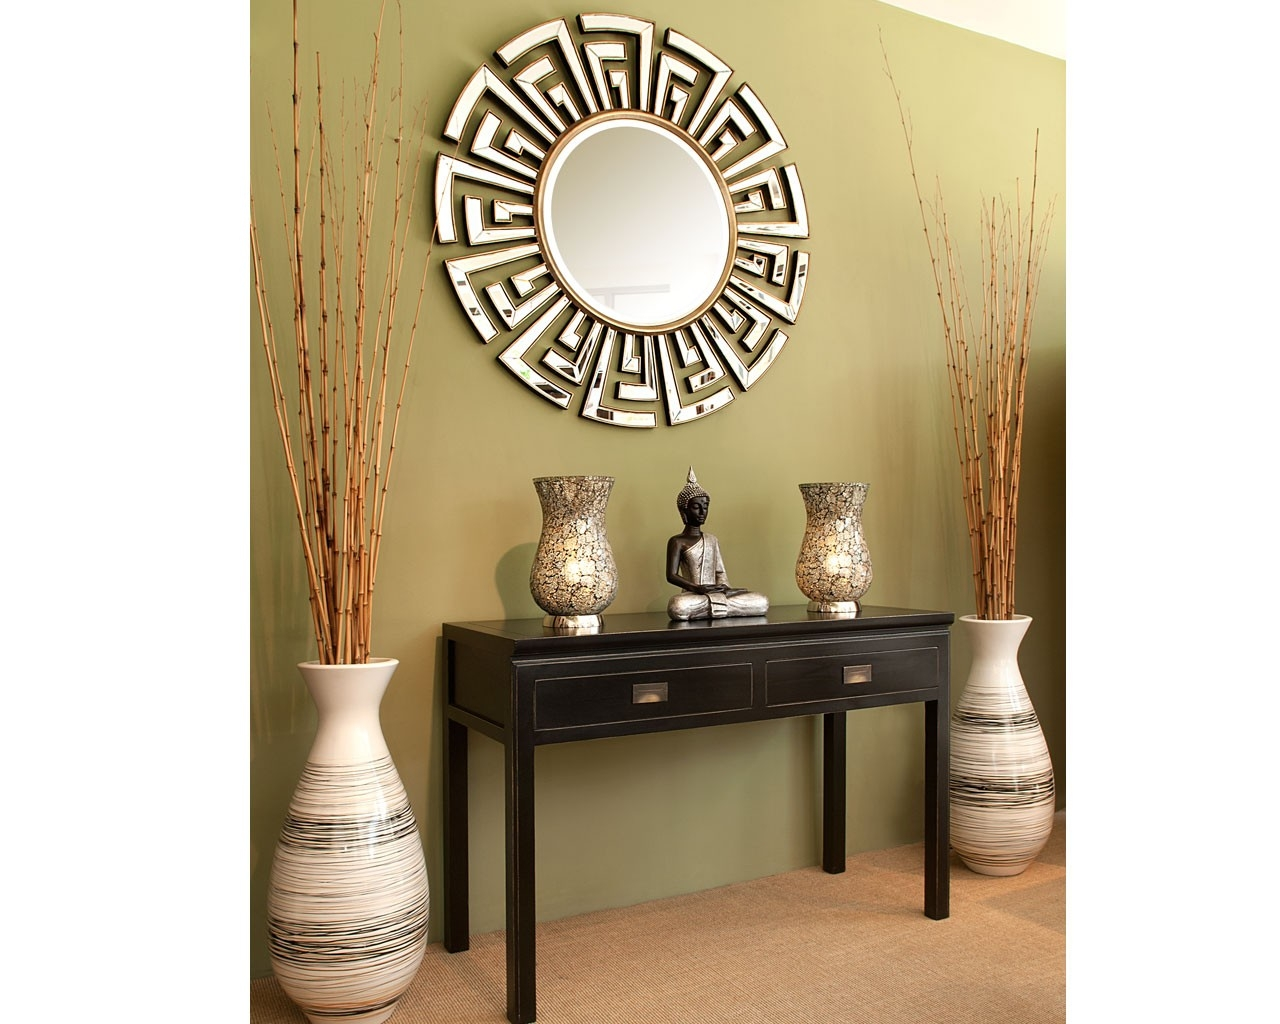 Contemporary Art Deco Round Mirror Statement Circular Mirrors Regarding Deco Mirror (Image 6 of 15)